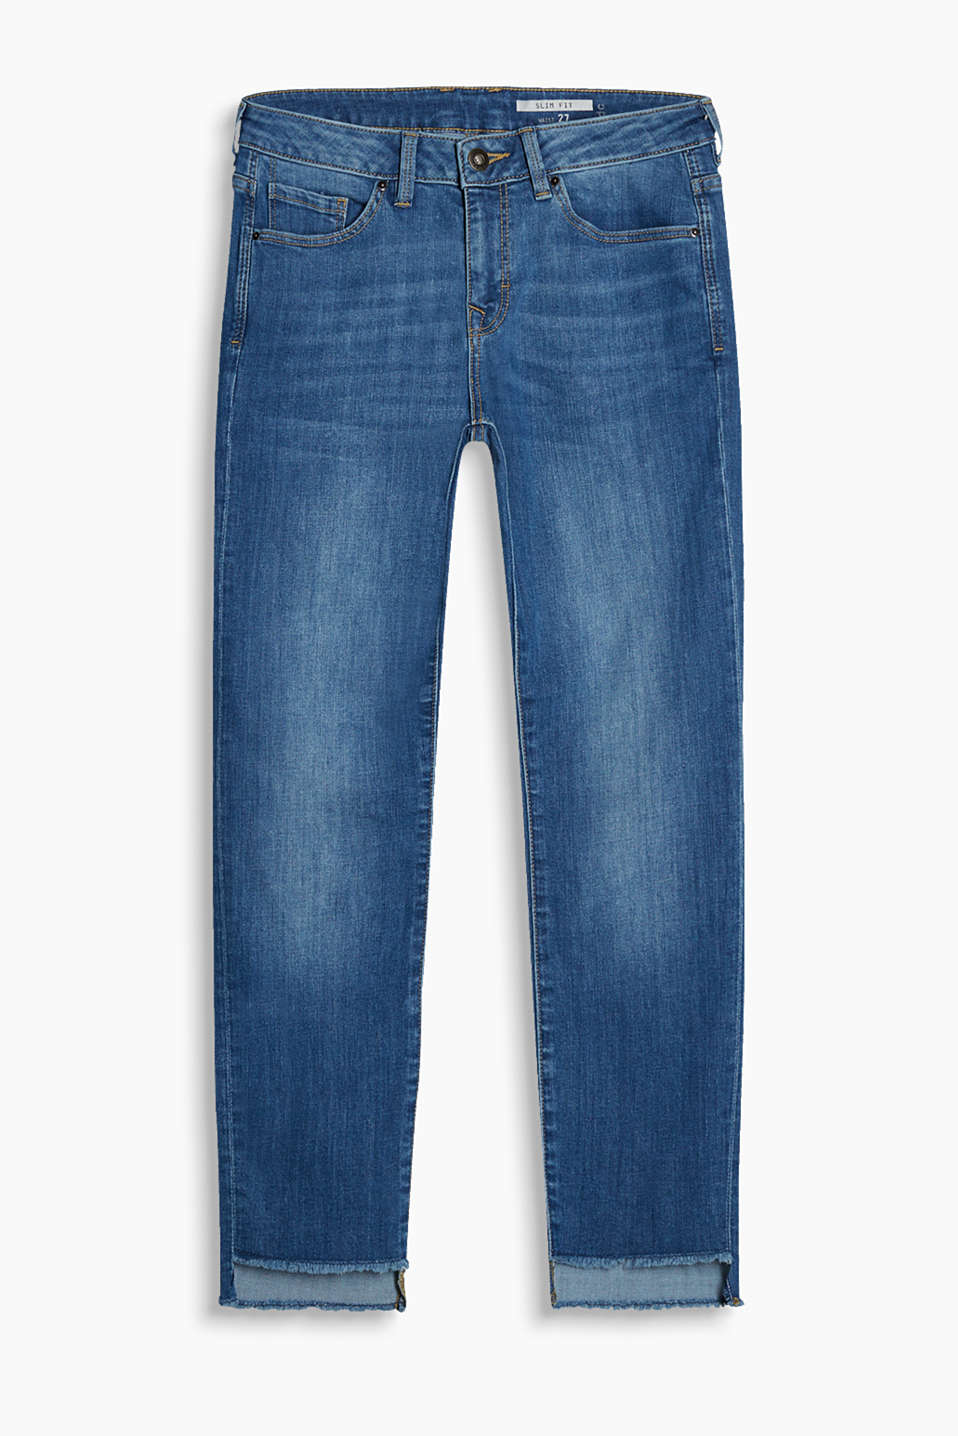 Cropped stretch jeans with elaborately finished hems in an authentic wash